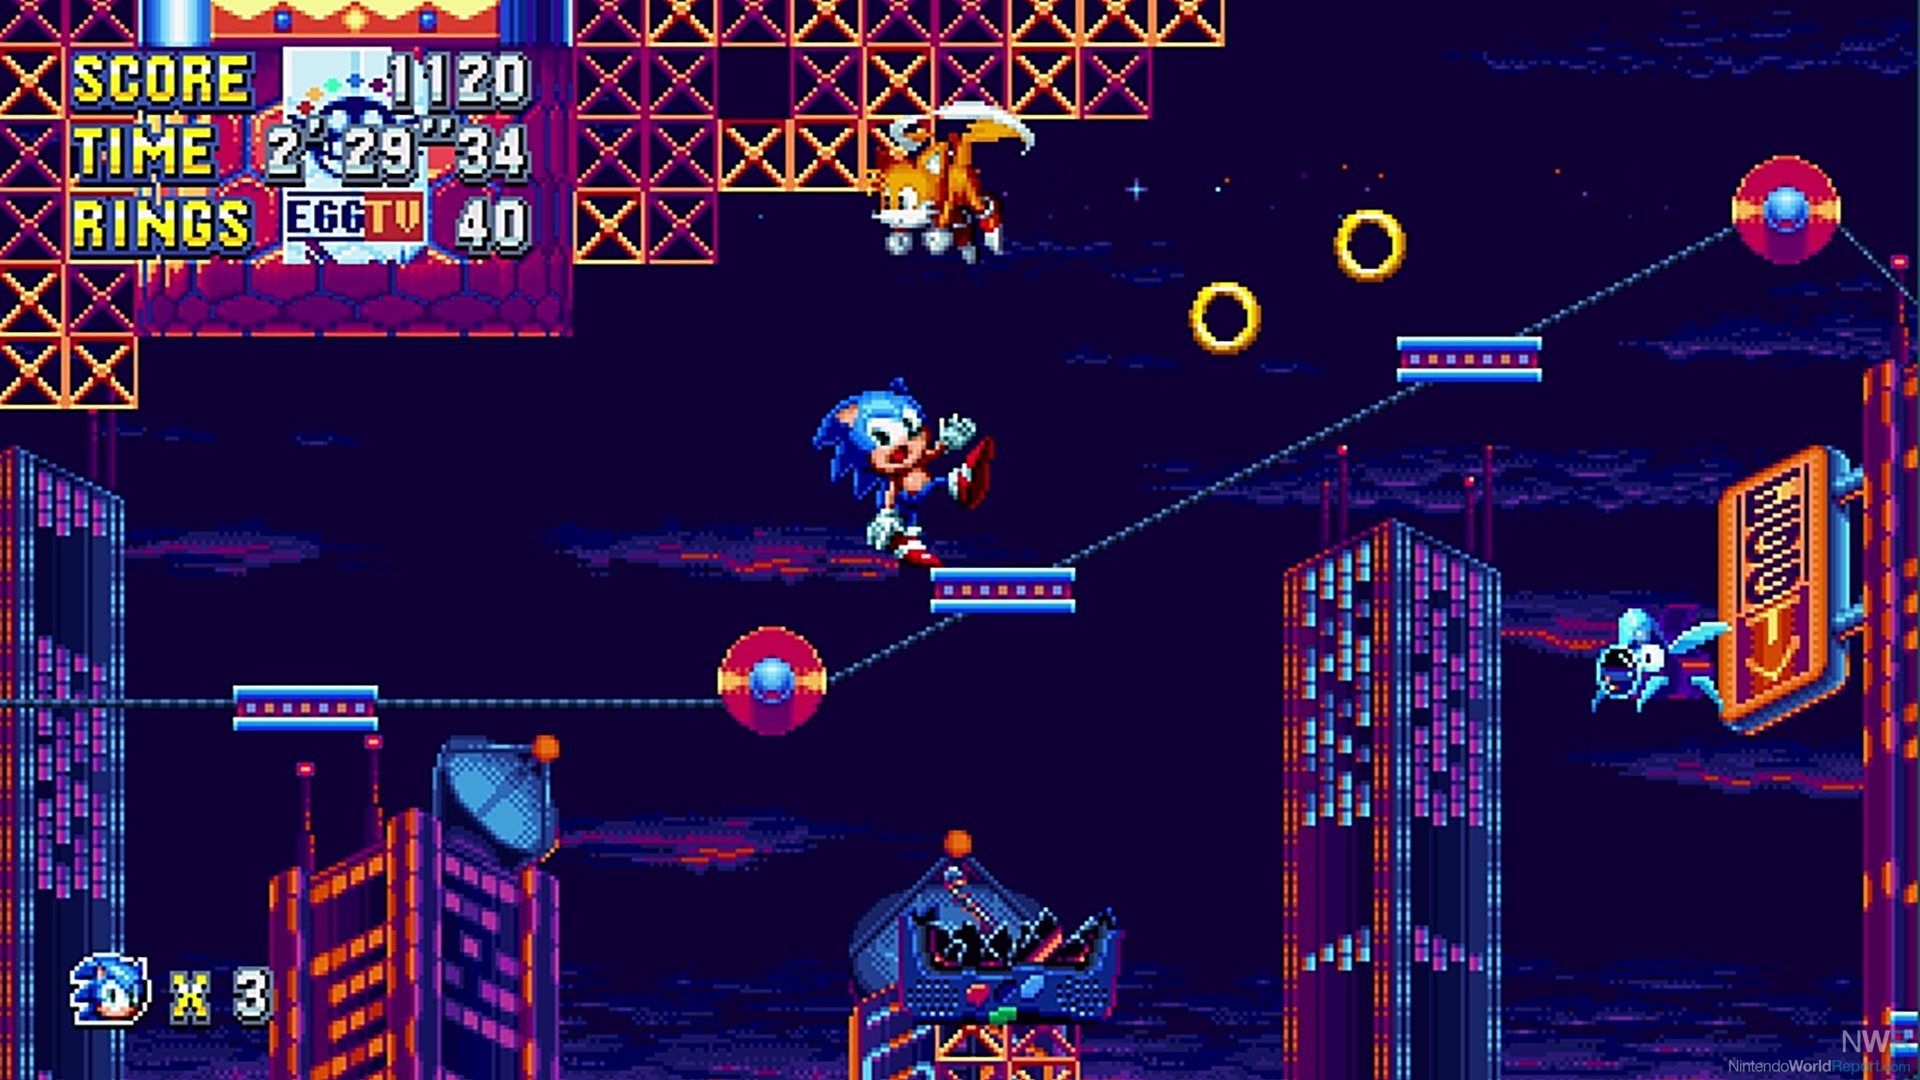 Sonic Mania dashes onto consoles and PC on August 15